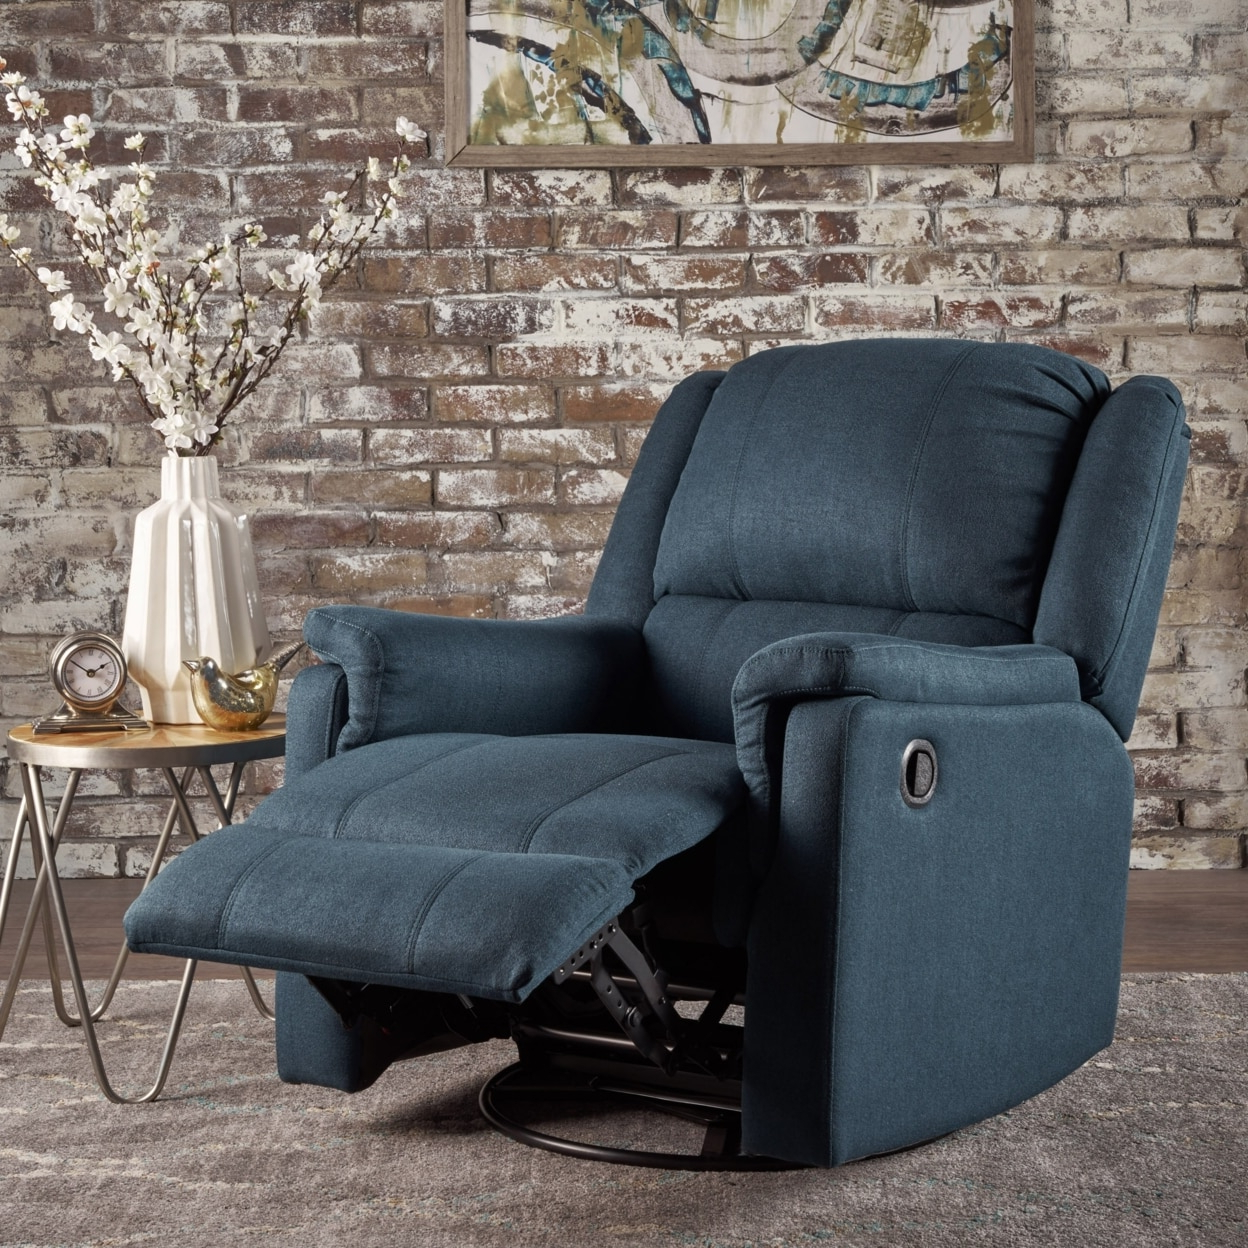 Decker Ii Fabric Swivel Glider Recliners For Most Current Jemma Tufted Fabric Swivel Gliding Recliner Chair In Living Room (View 4 of 20)